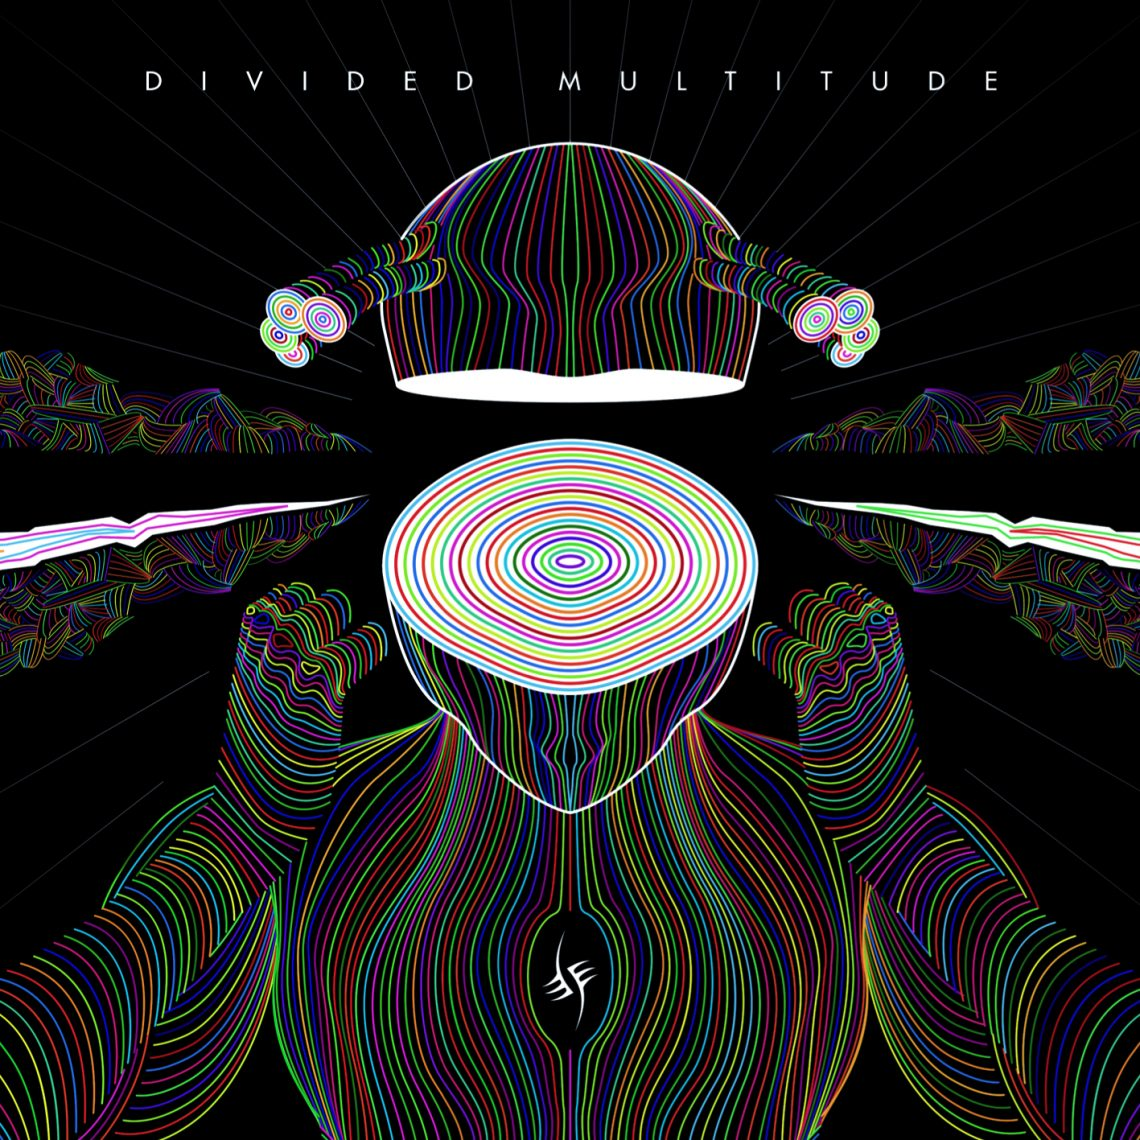 Divided Multitude – Divided Multitude – CD review